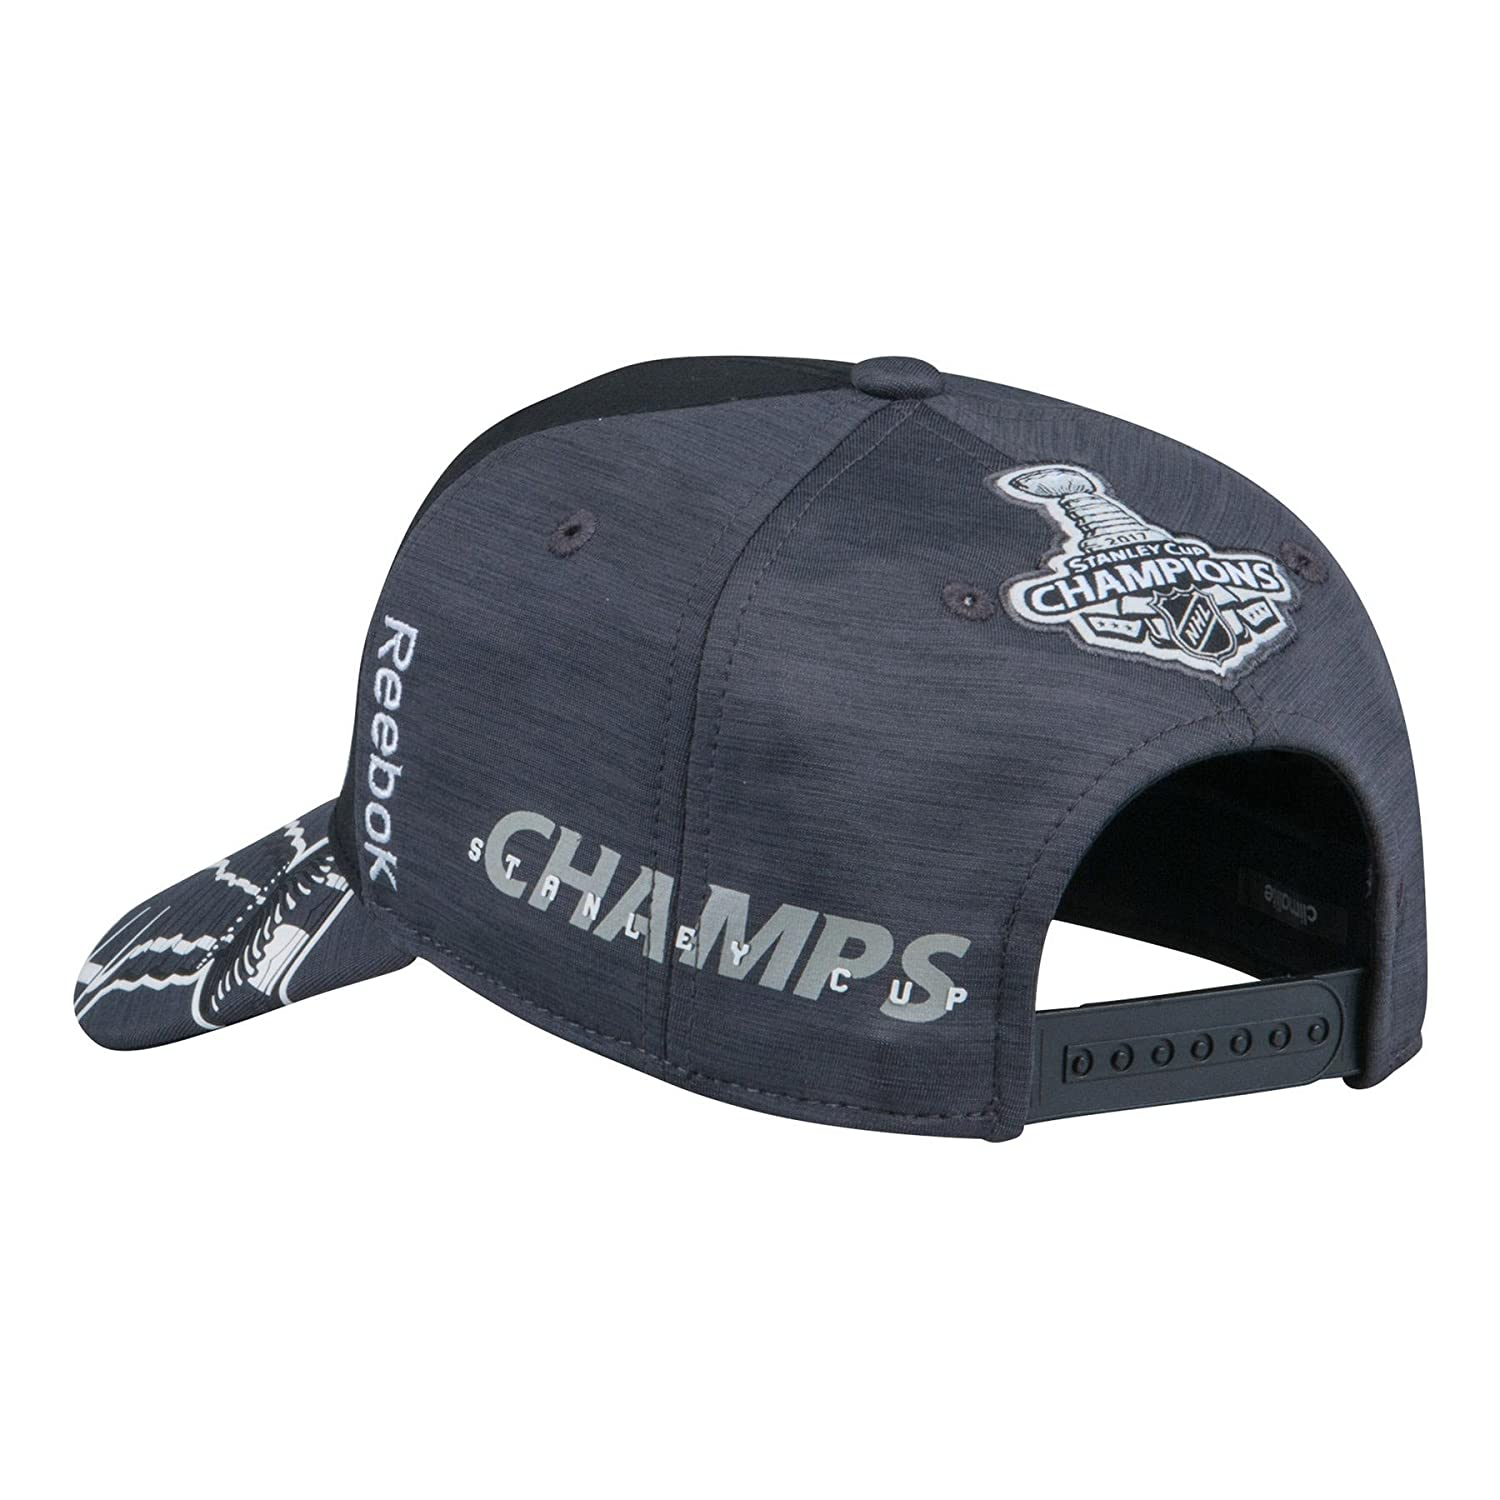 87c6dbdcb Pittsburgh Penguins 2017 Stanley Cup Final Champions Reebok Official Locker  Room Hat   Cap